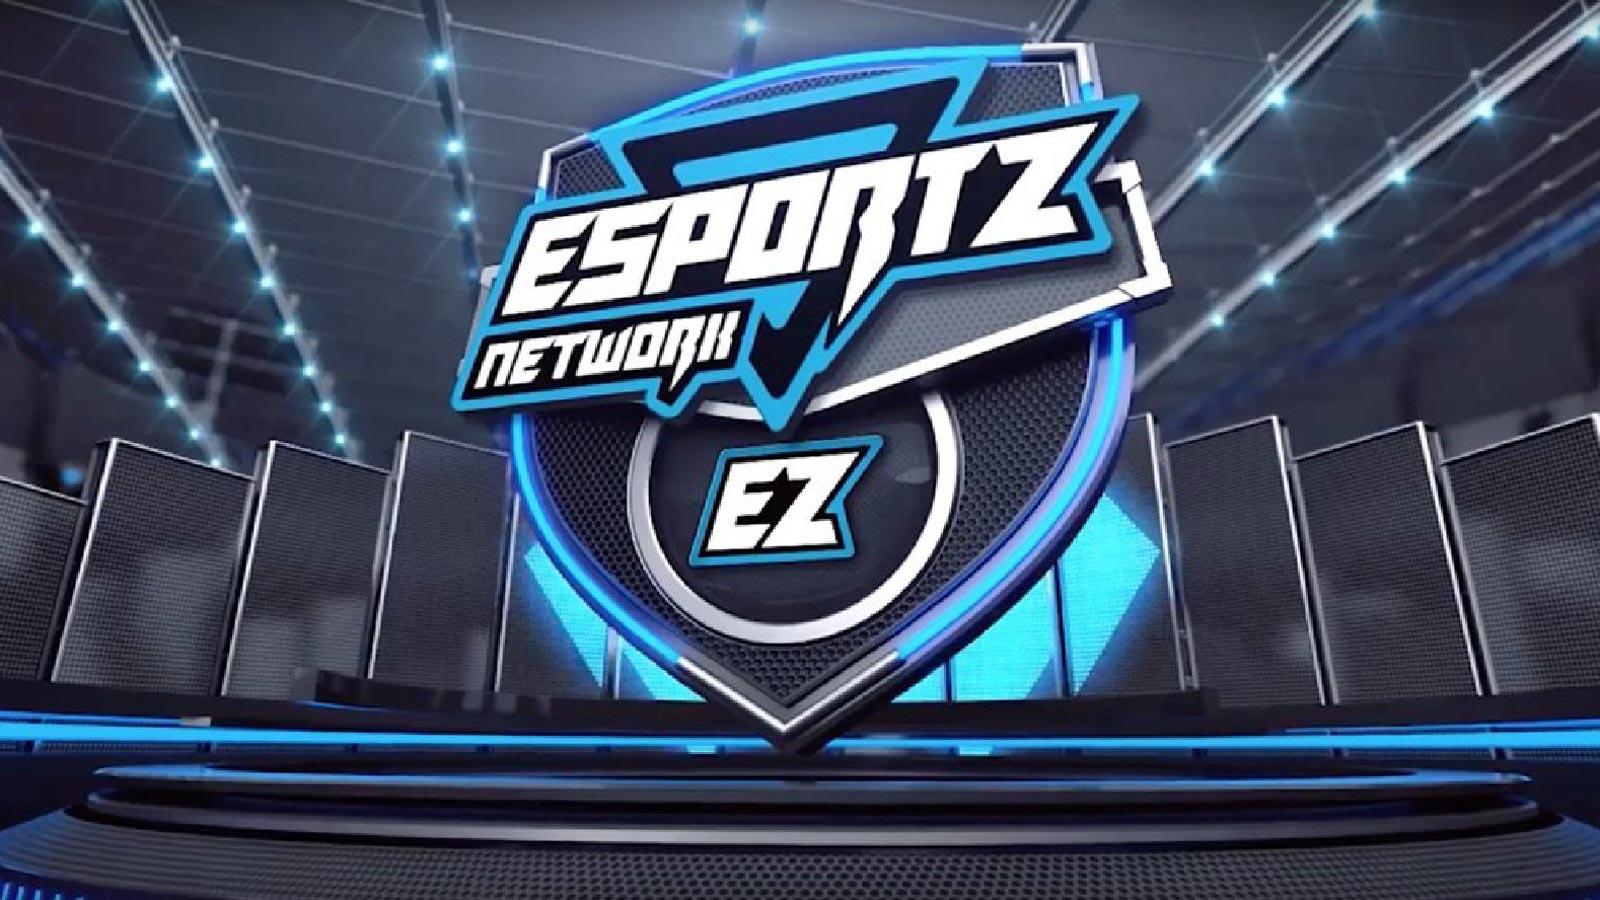 Esportz Entertainment virtual studio news